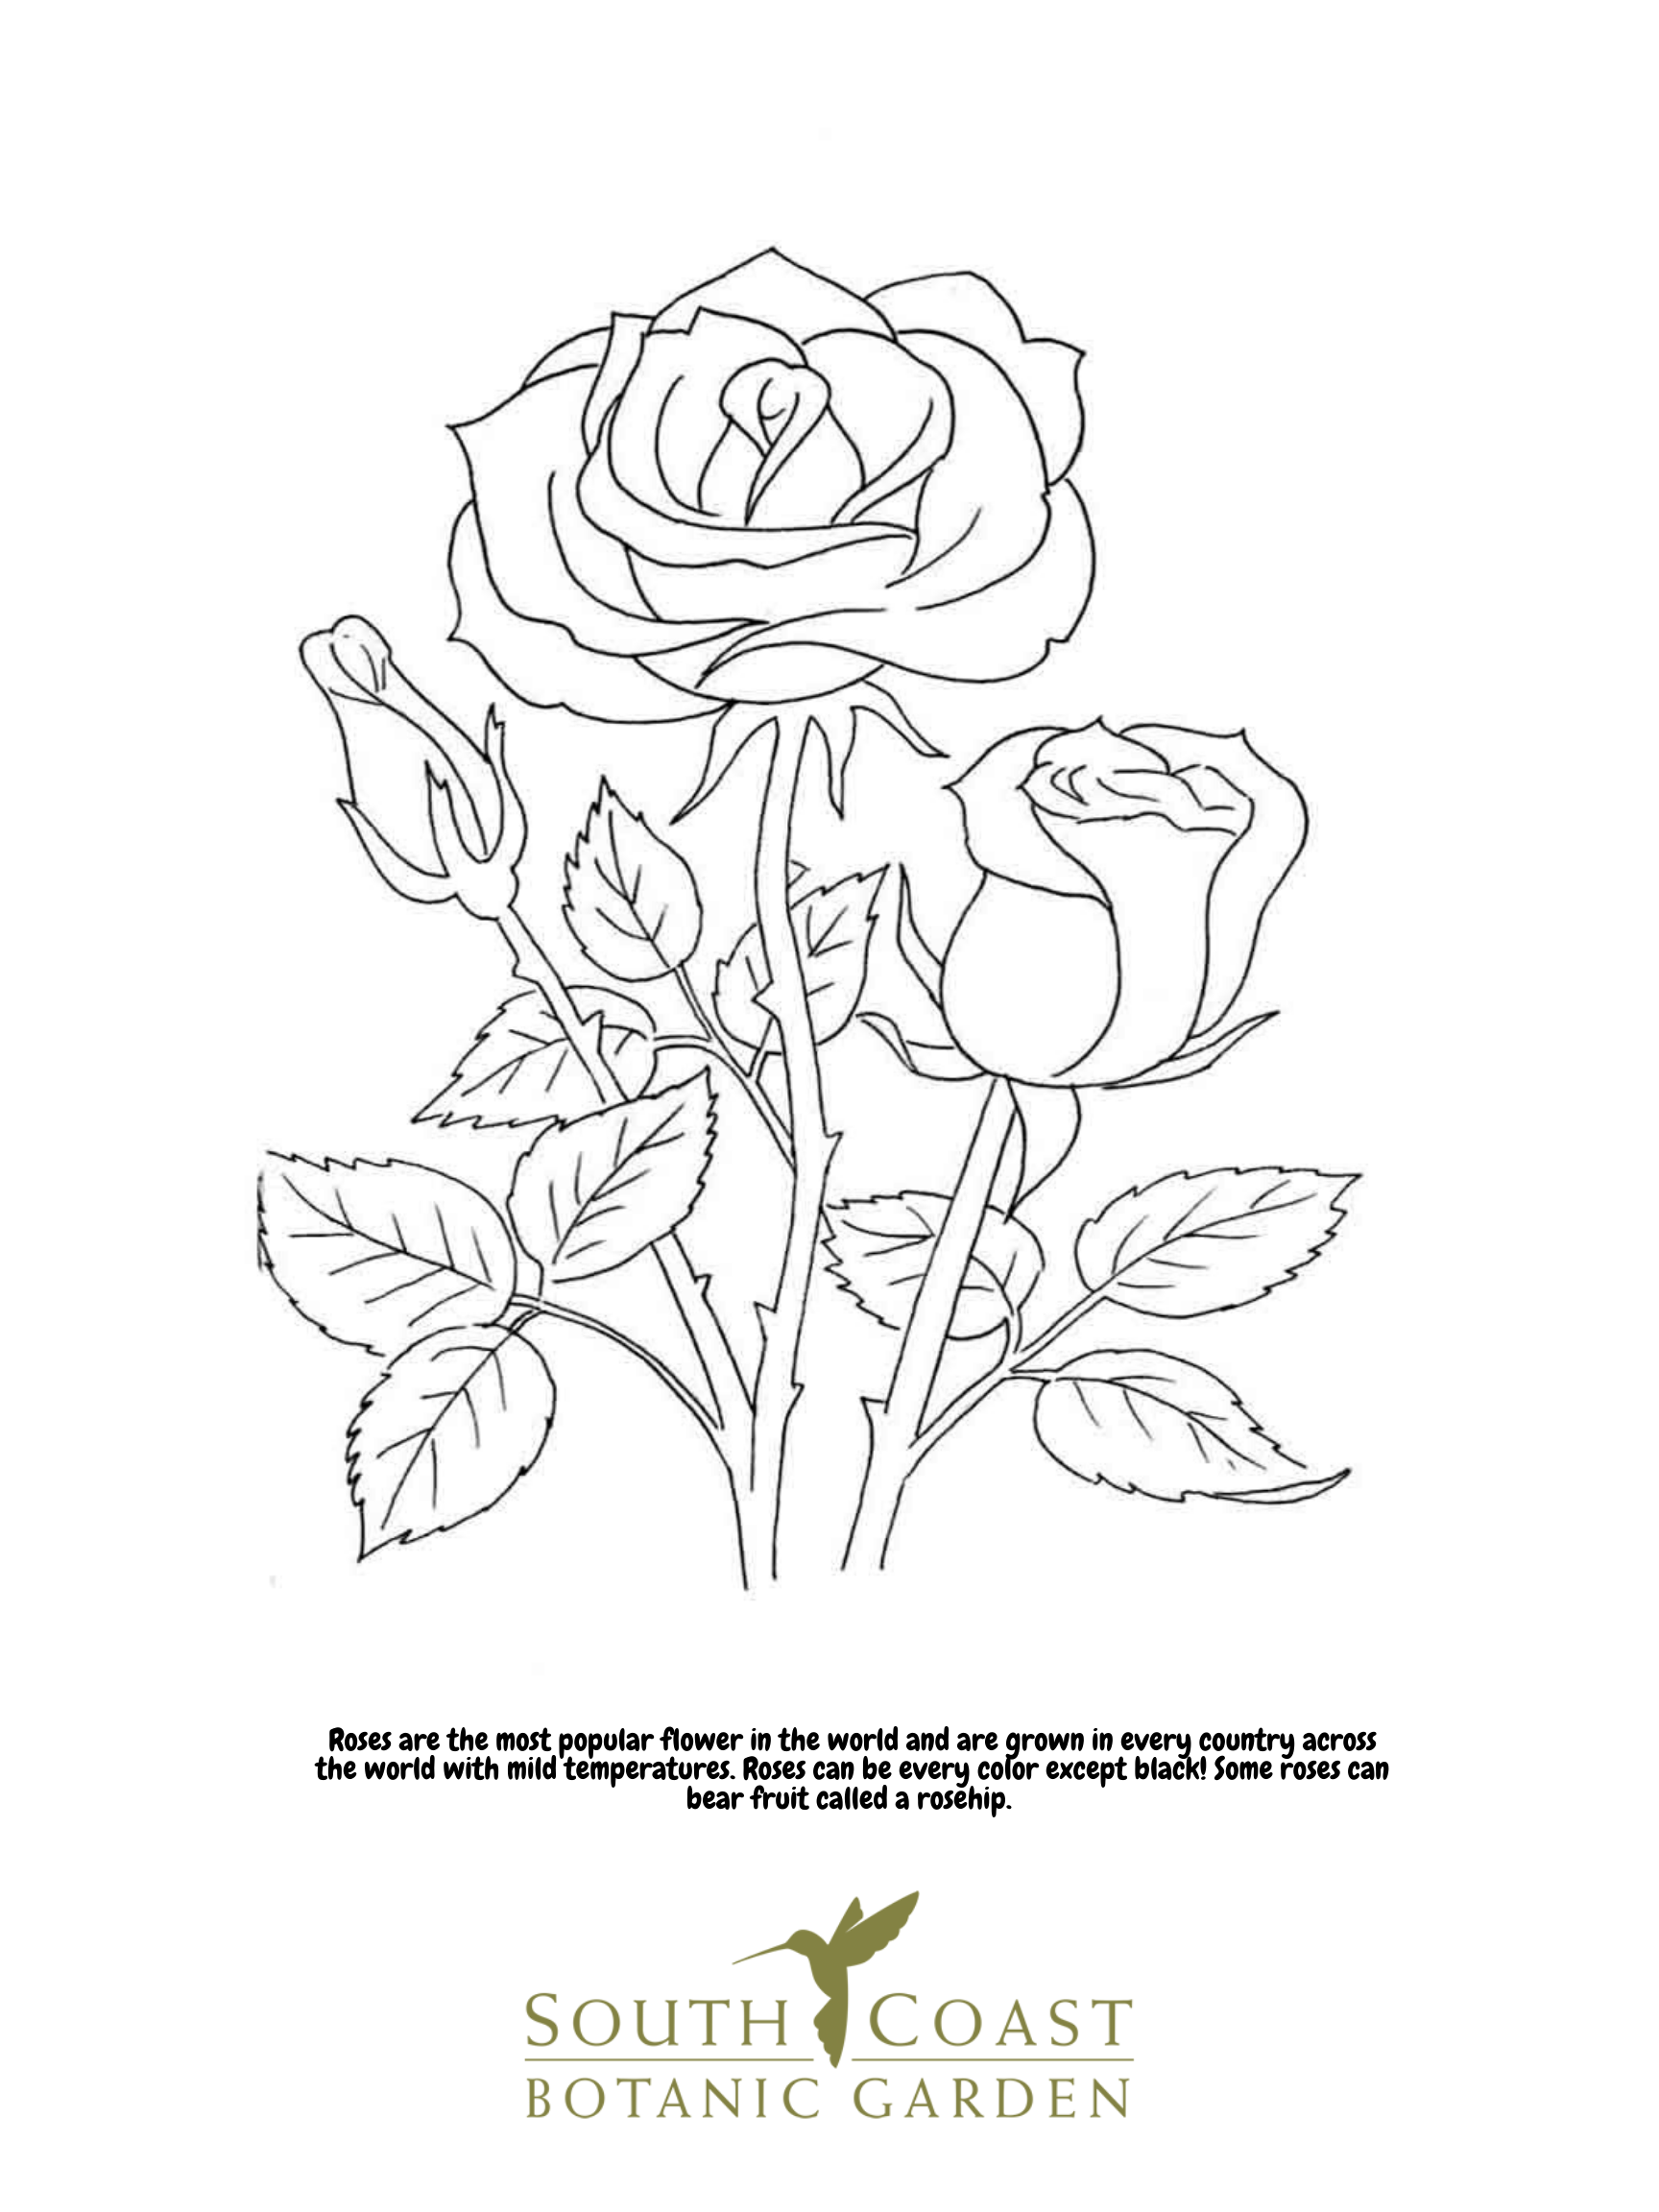 Trolls Poppy Troll Coloring Pages Printable | 2304x1728